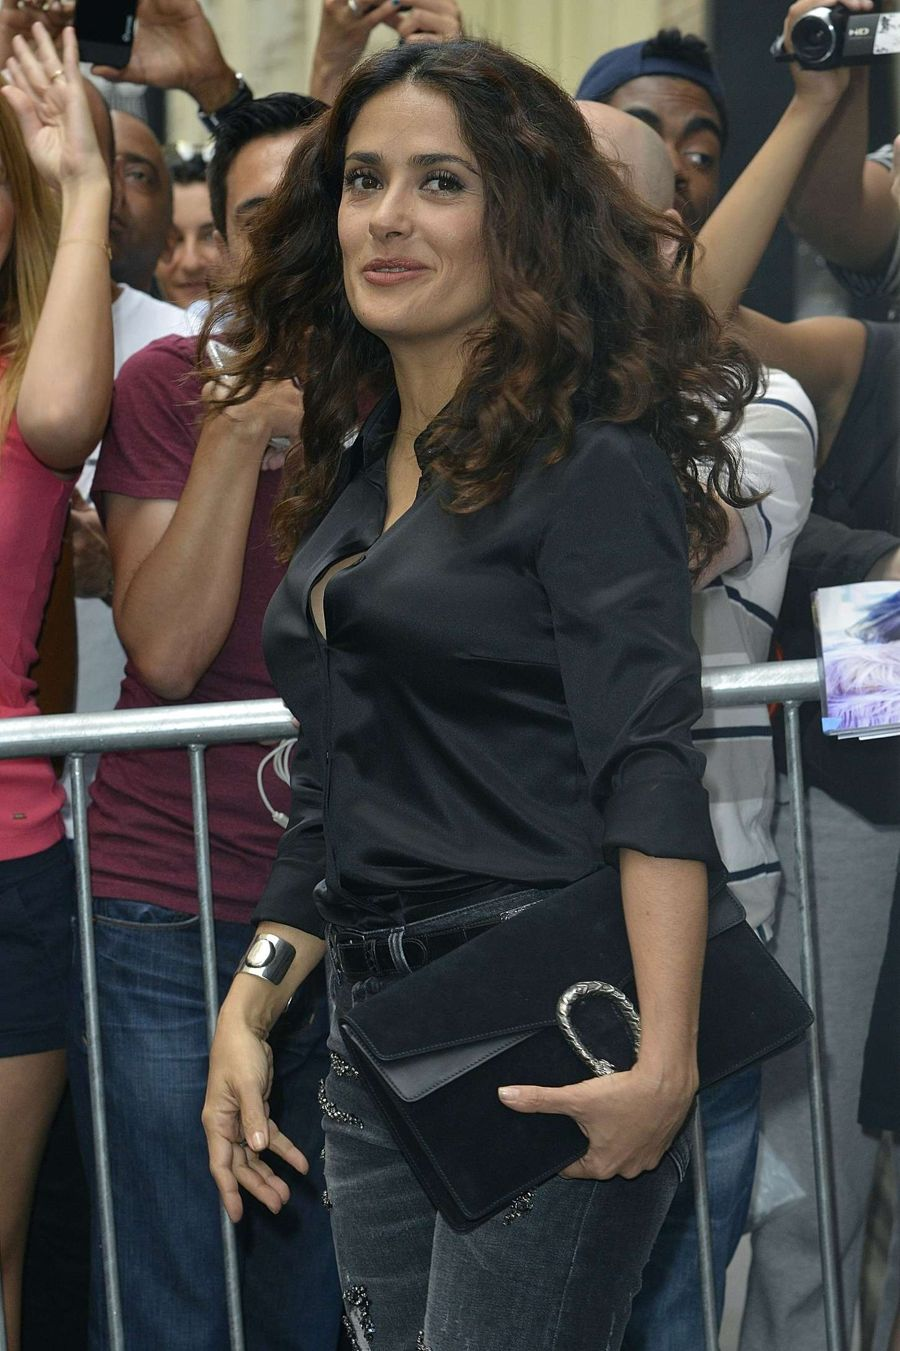 Salma Hayek in Tight Jeans at the Apple Store in NY